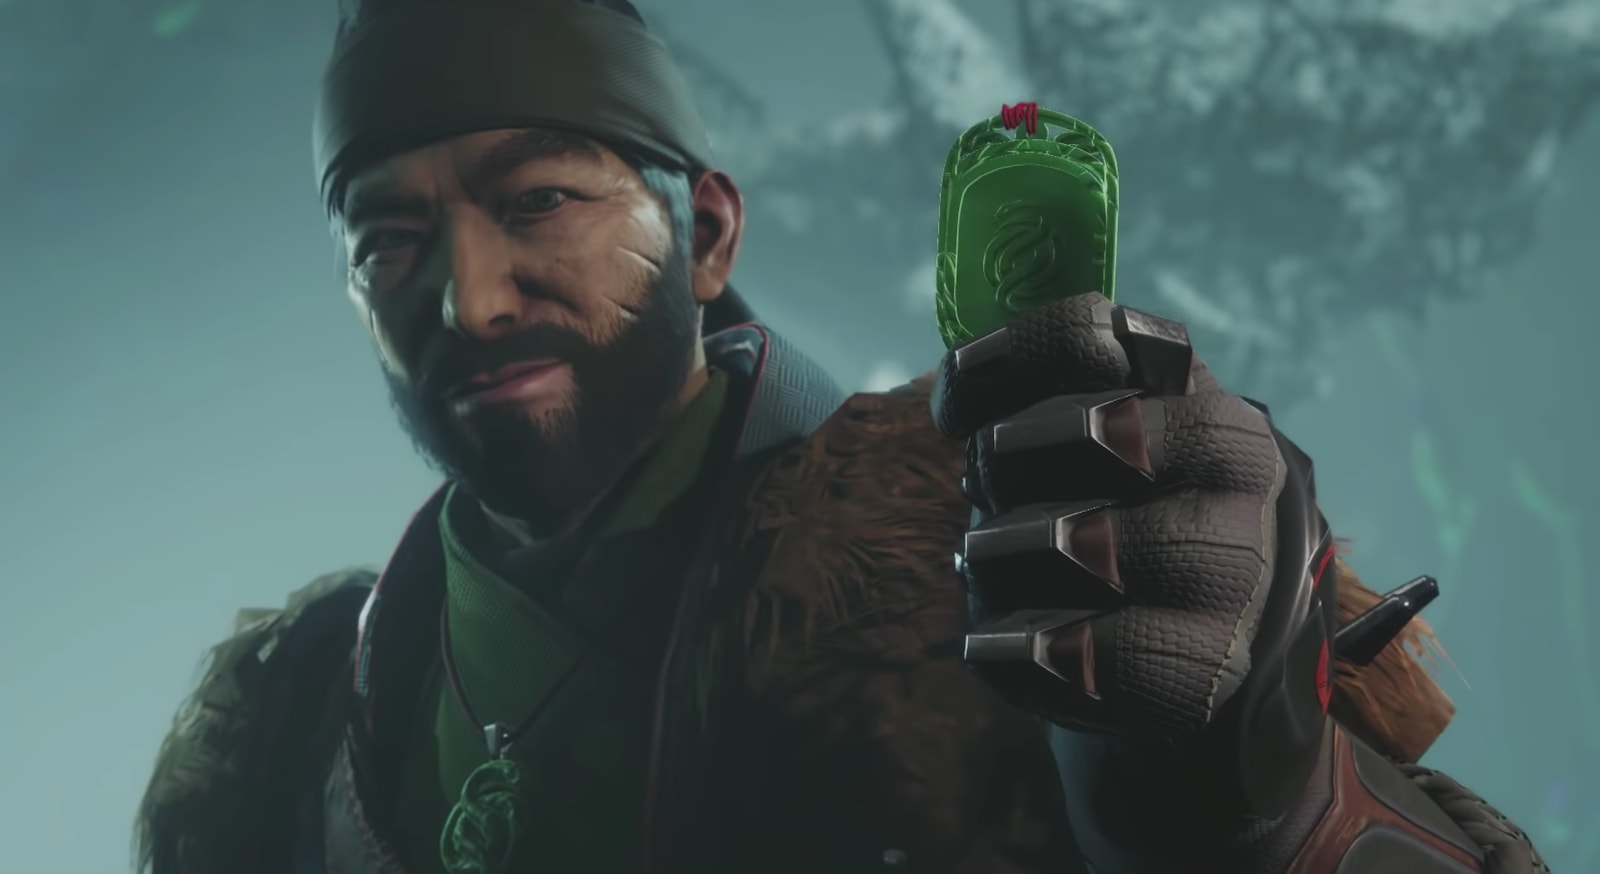 Destiny 2's Season of the Drifter will add better clan rewards and